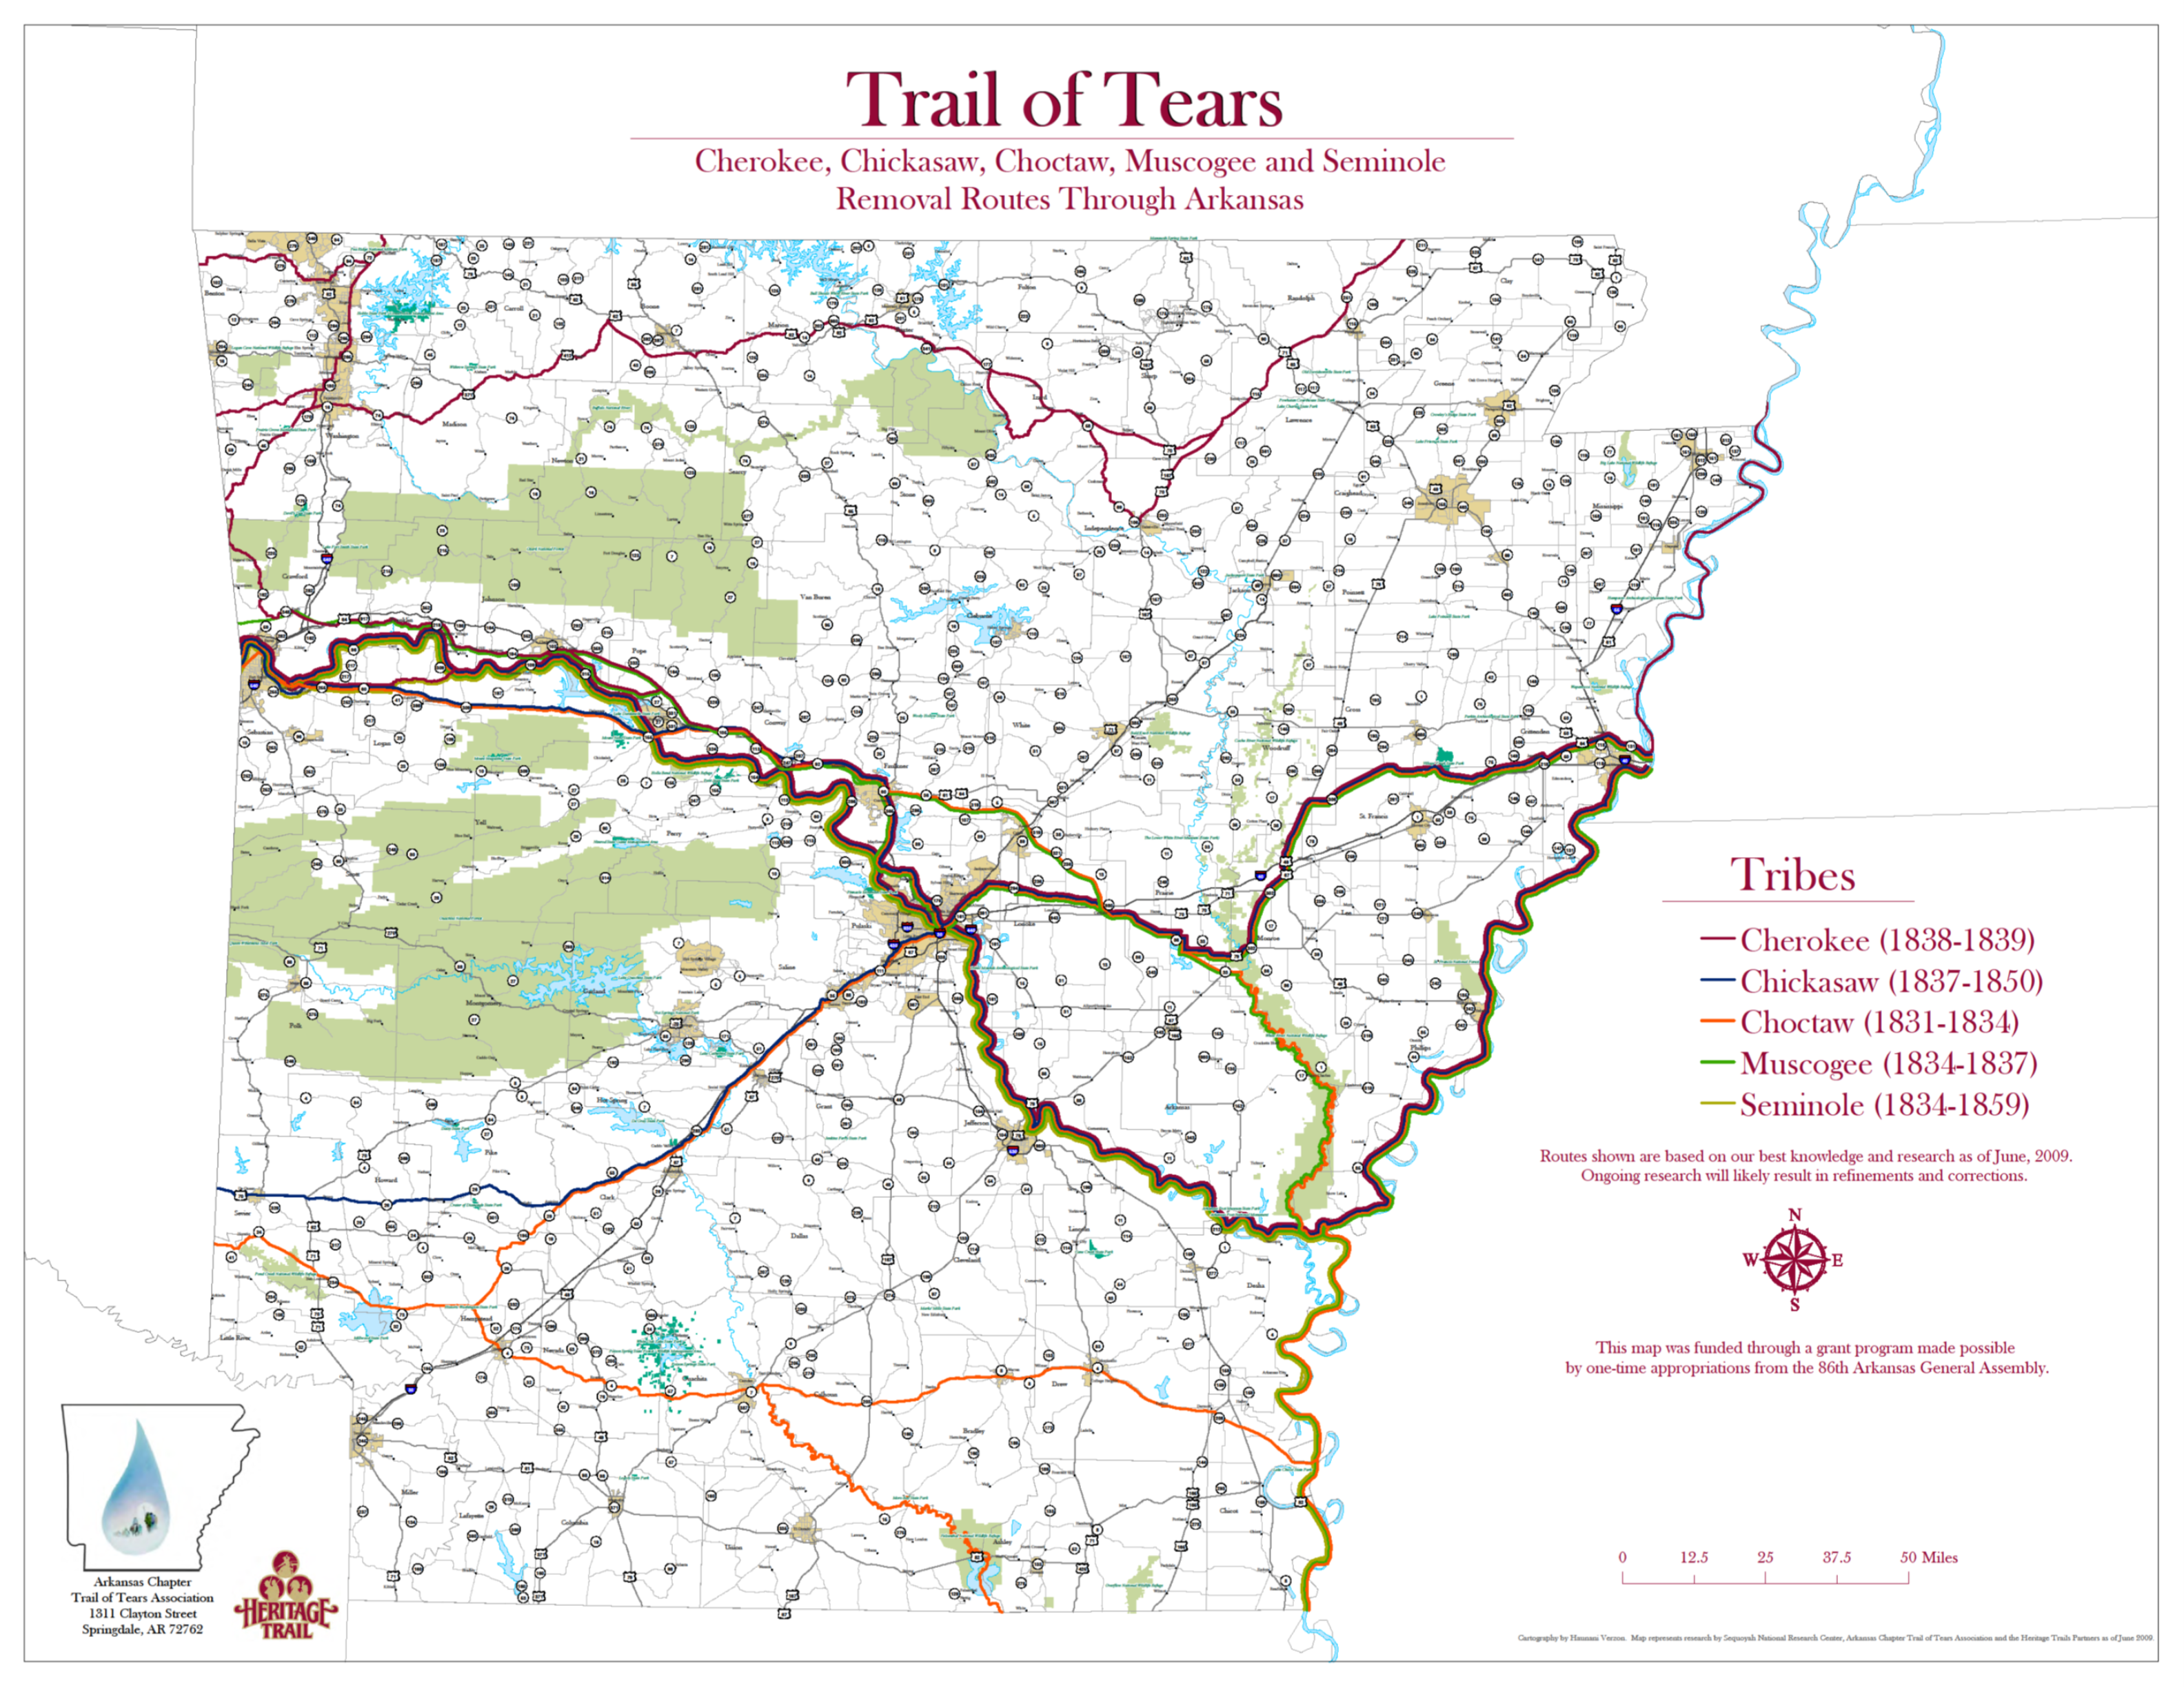 Map of the removal routes used by the five Southeastern tribes that removed to present day Oklahoma. Courtesy of Arkansas Chapter of the Trail of Tears Association.